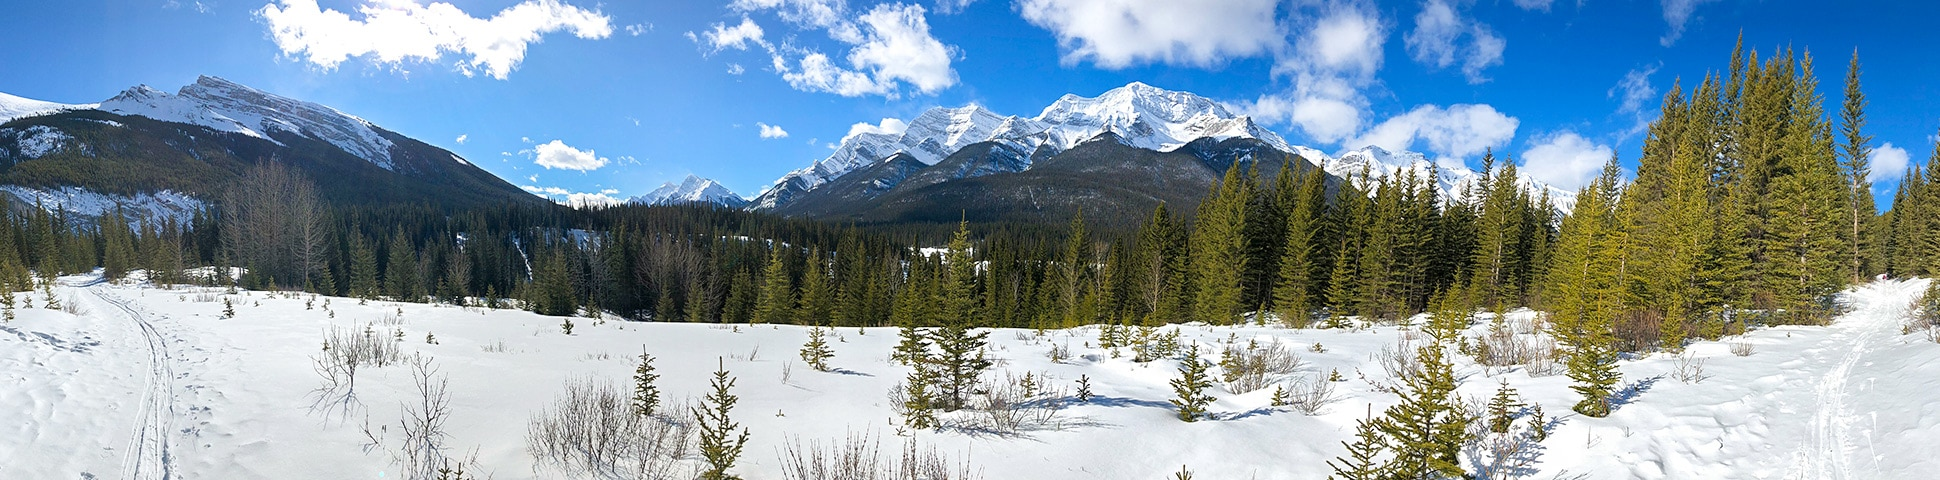 Panorama of Goat Creek to Banff Springs XC ski trail in Canmore and Banff National Park